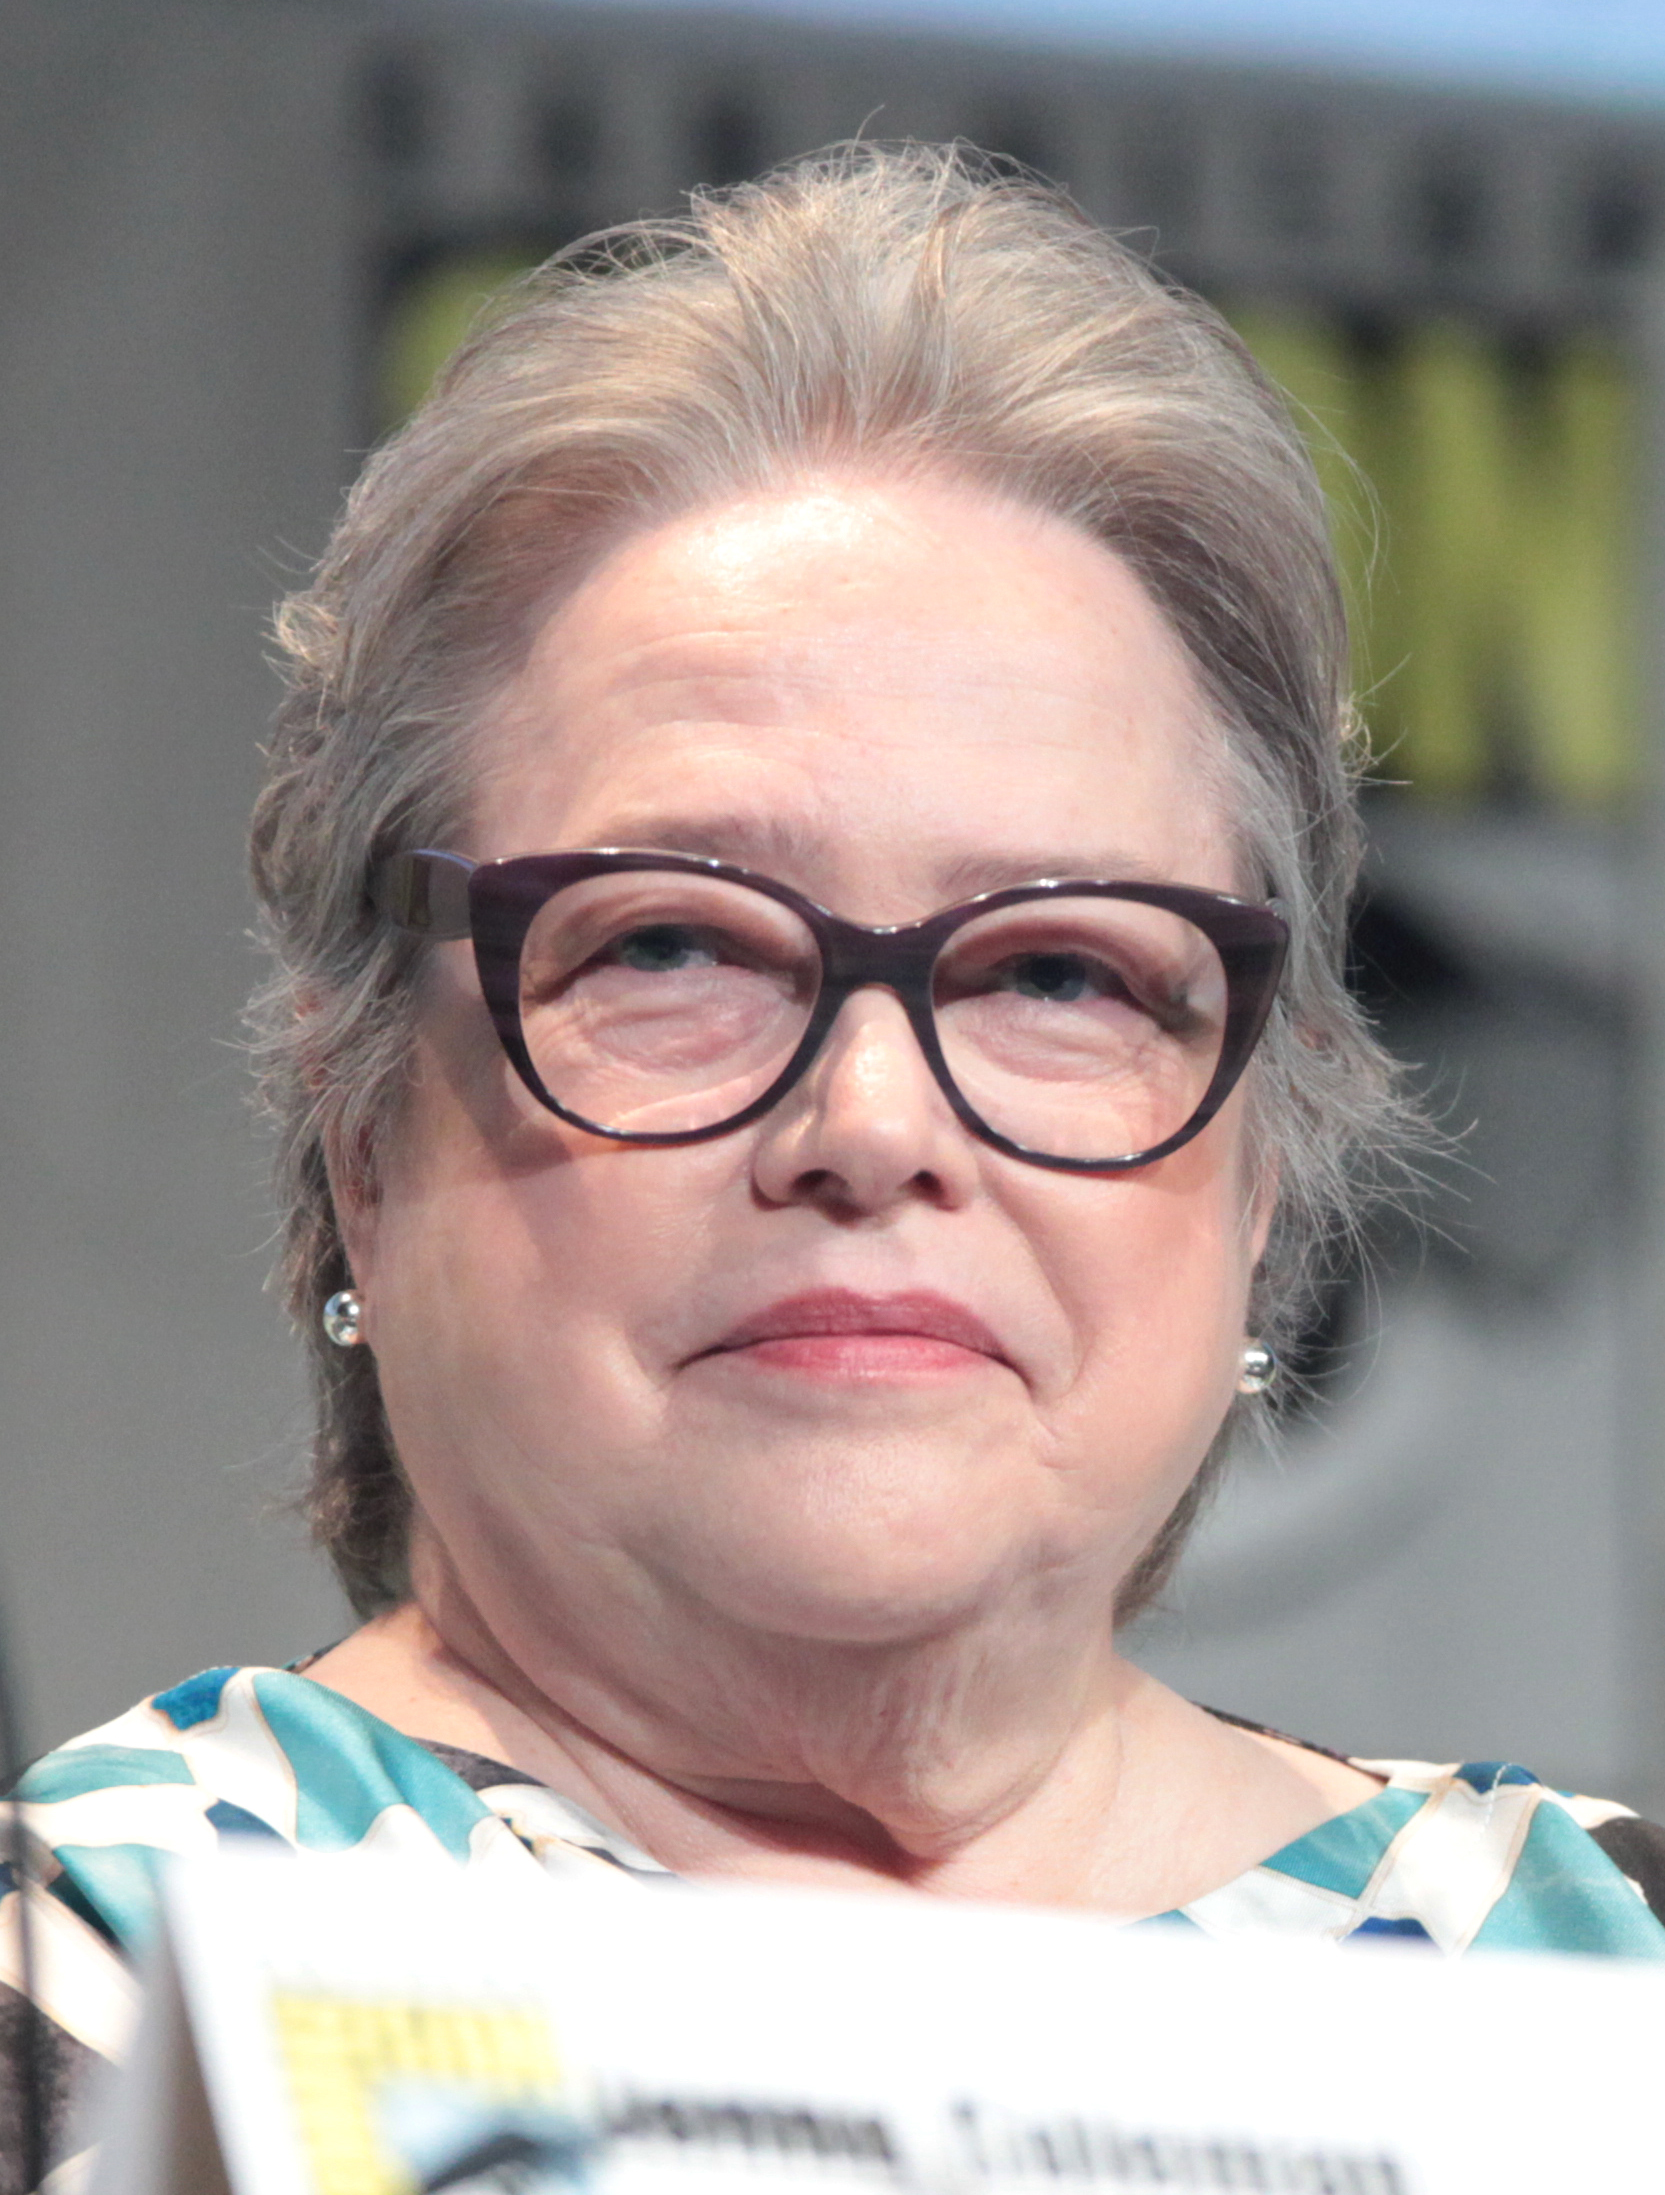 Kathy Bates Kathy Bates new photo